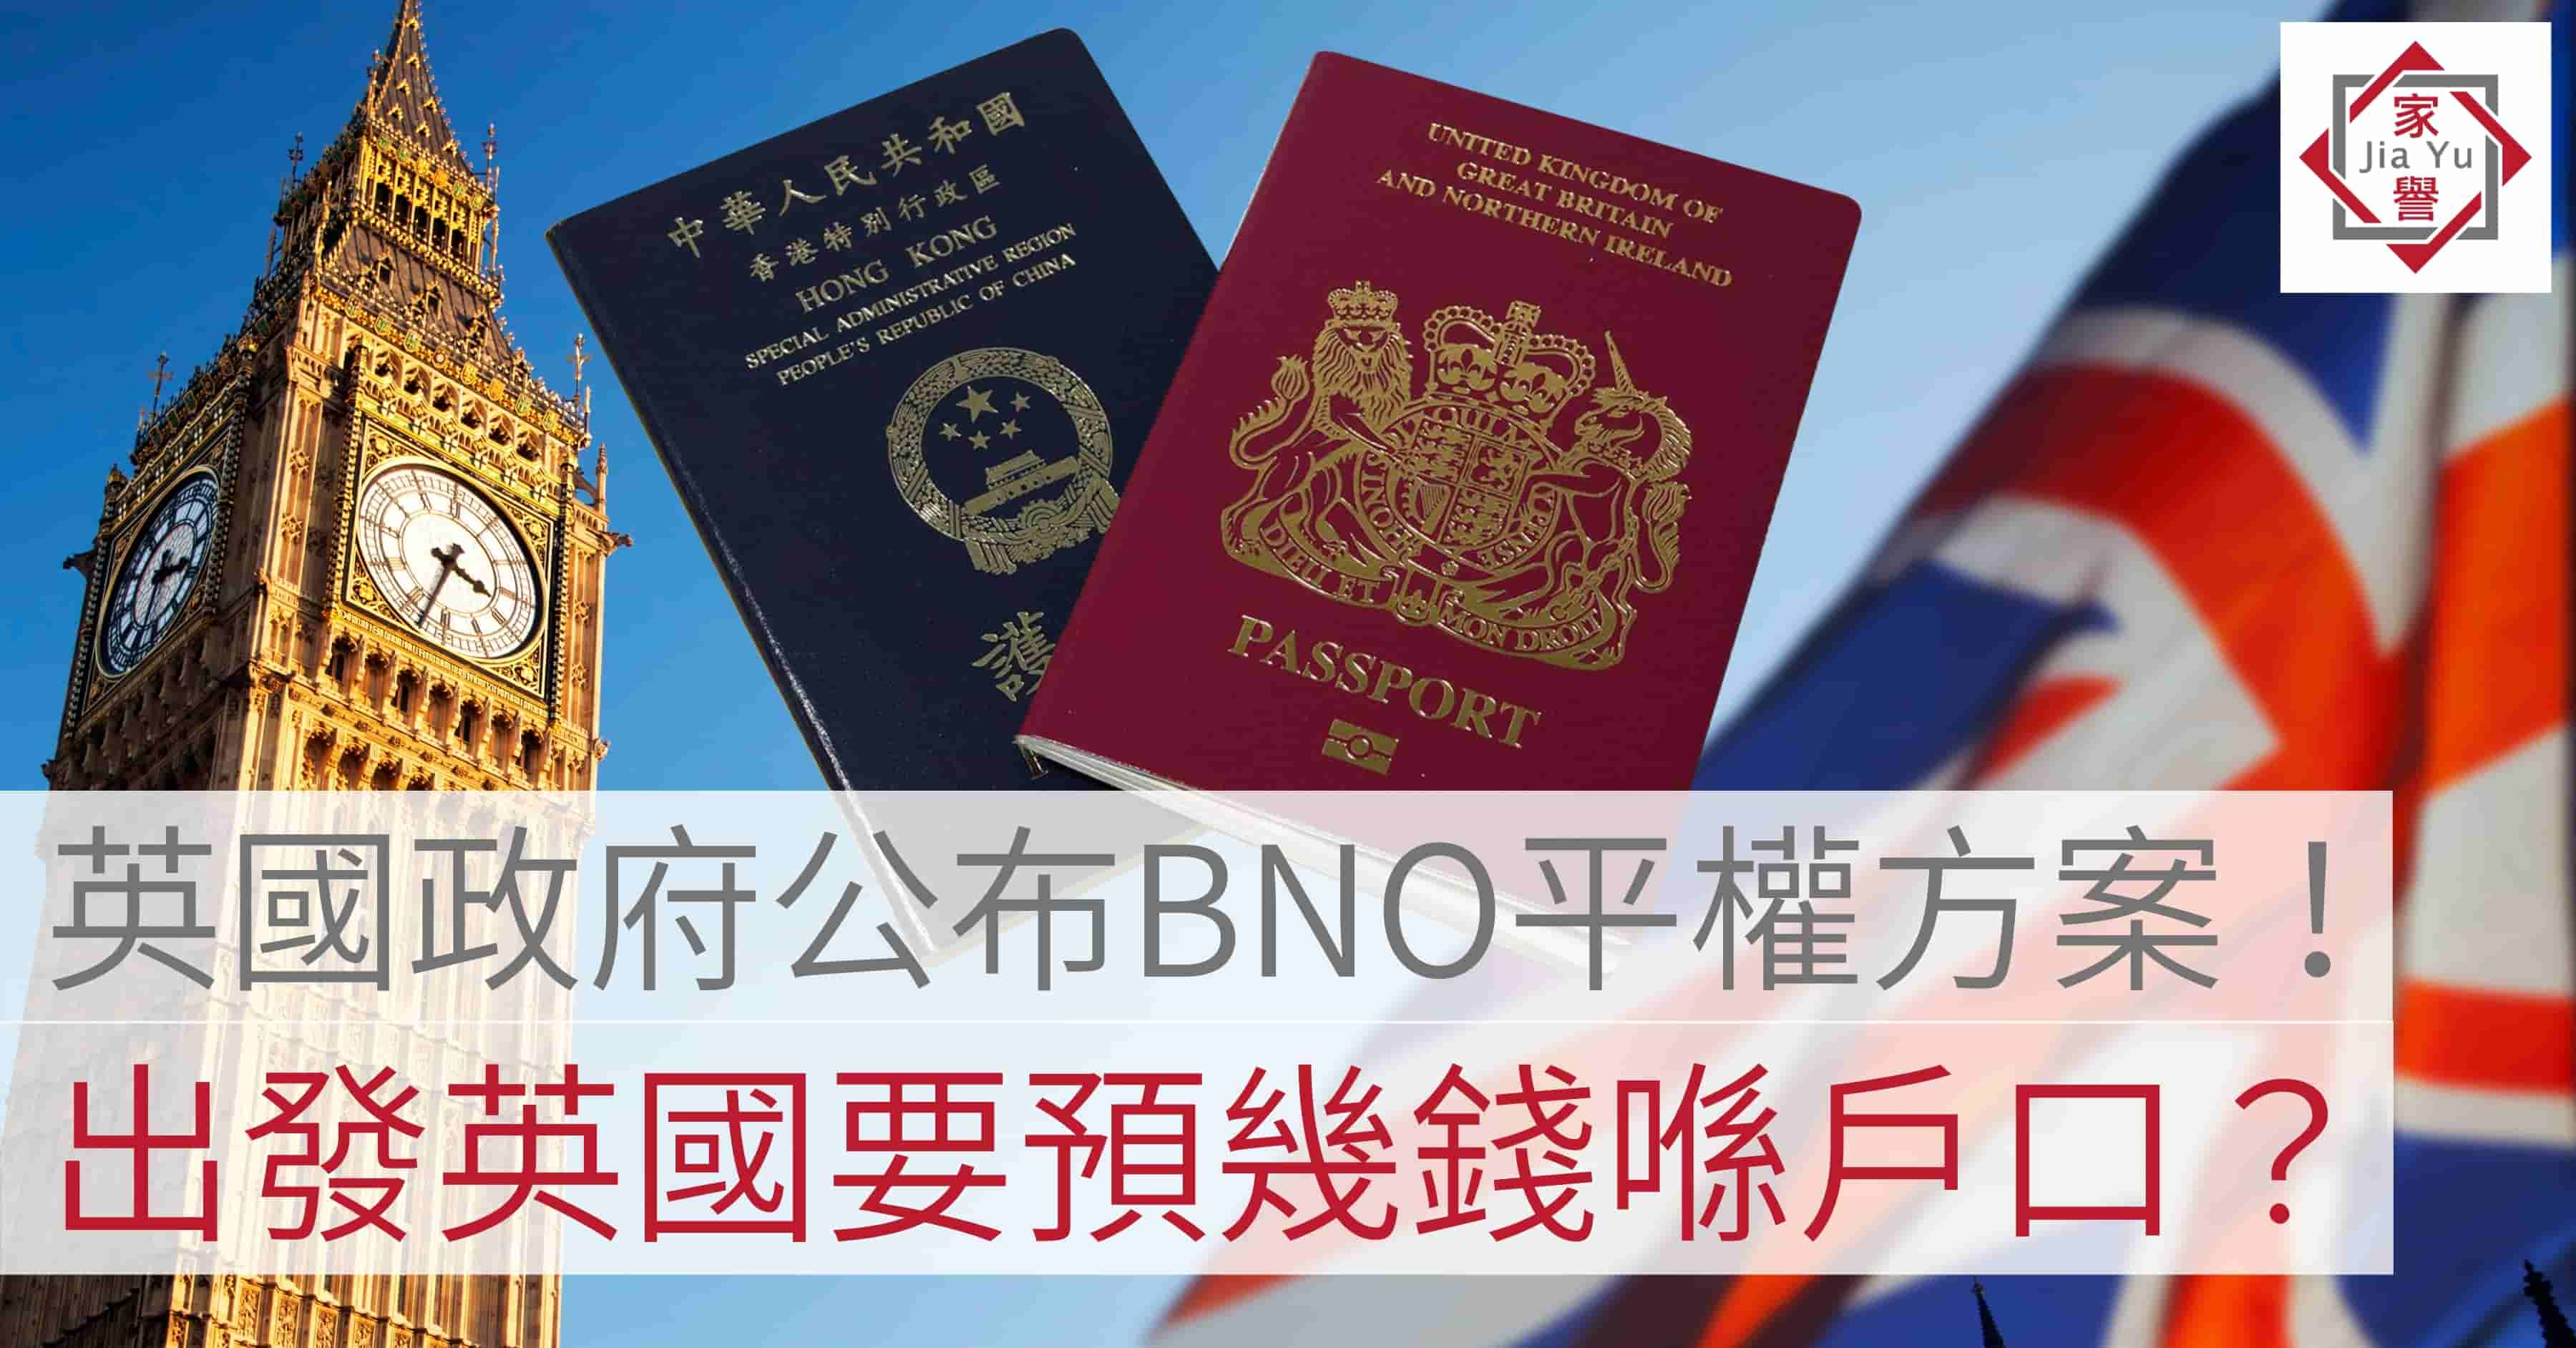 UK Government post the BNO Equal Right Art, how many budget you need for immigration to UK? | JiaYu